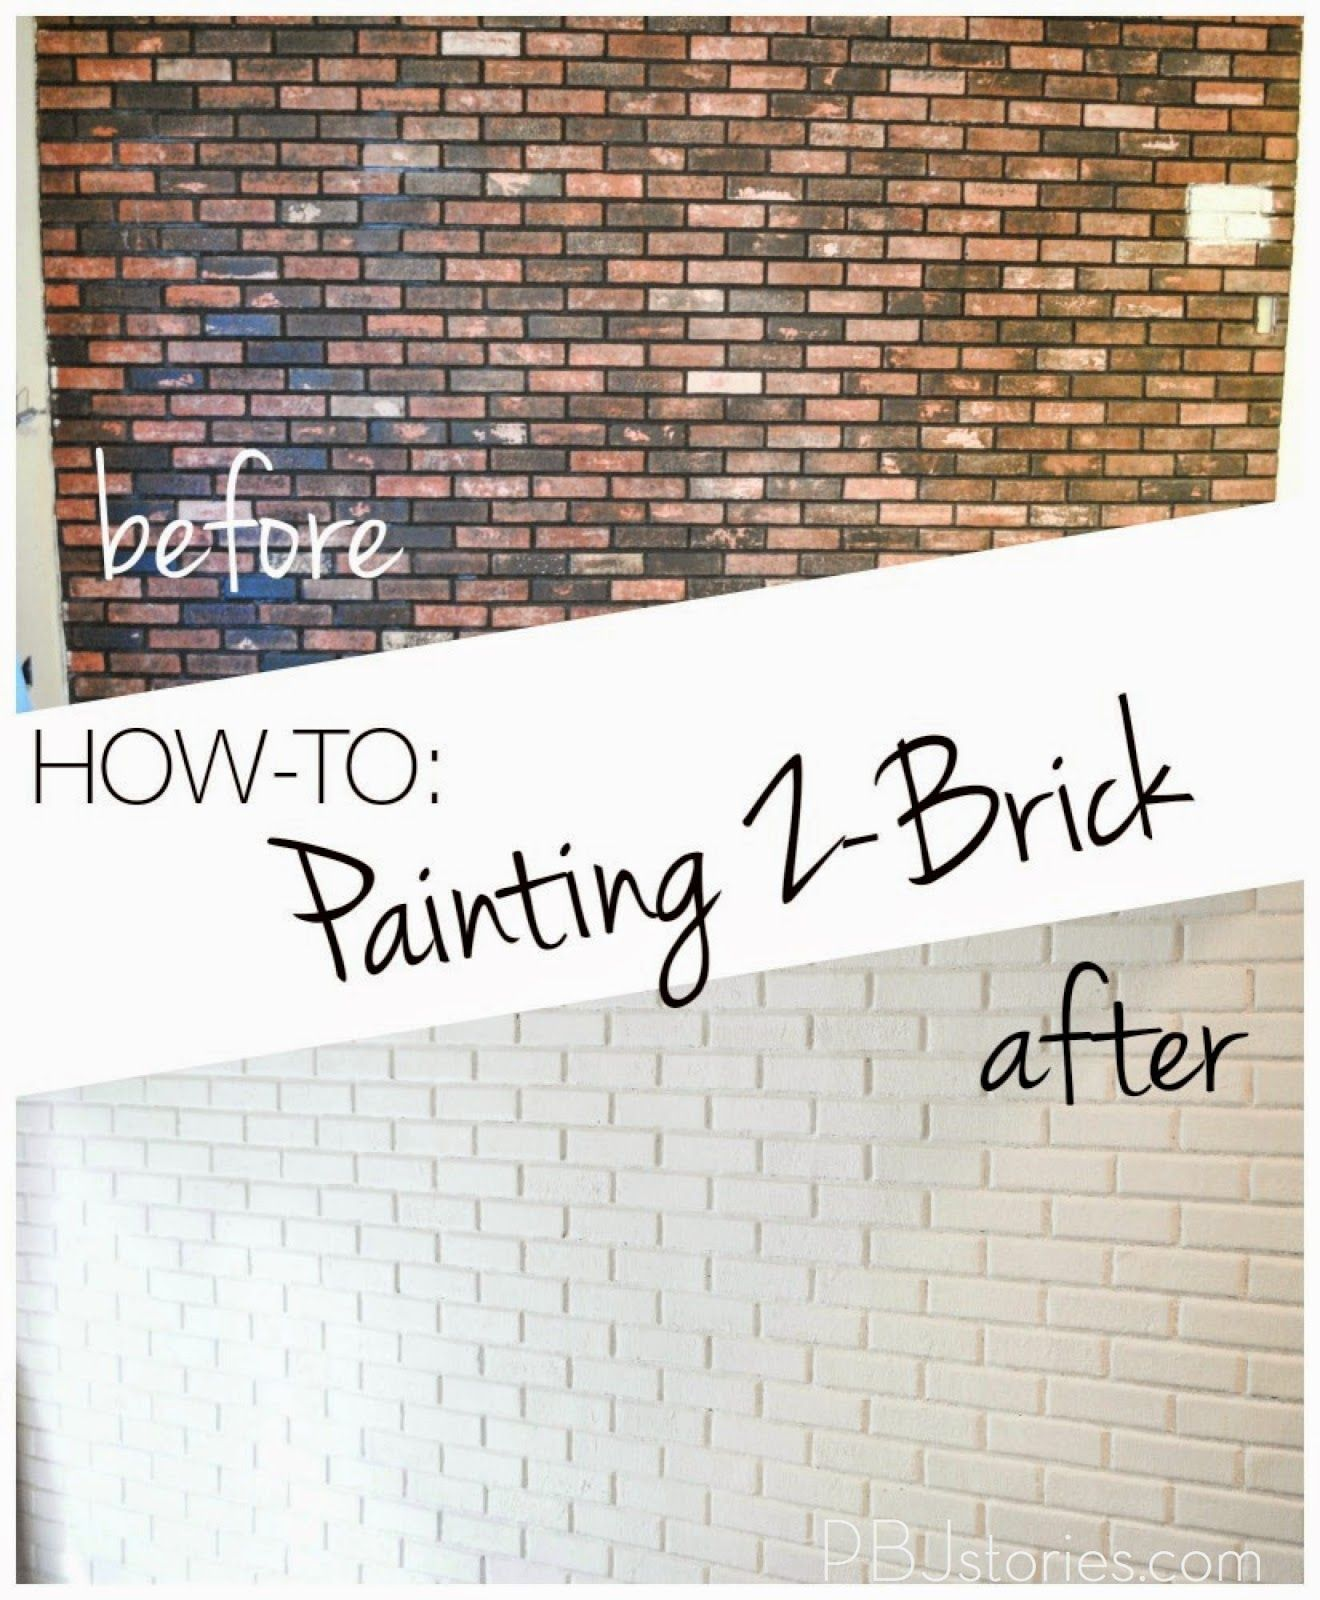 High Quality How To Paint An Interior Brick Wall | PBJstories.com